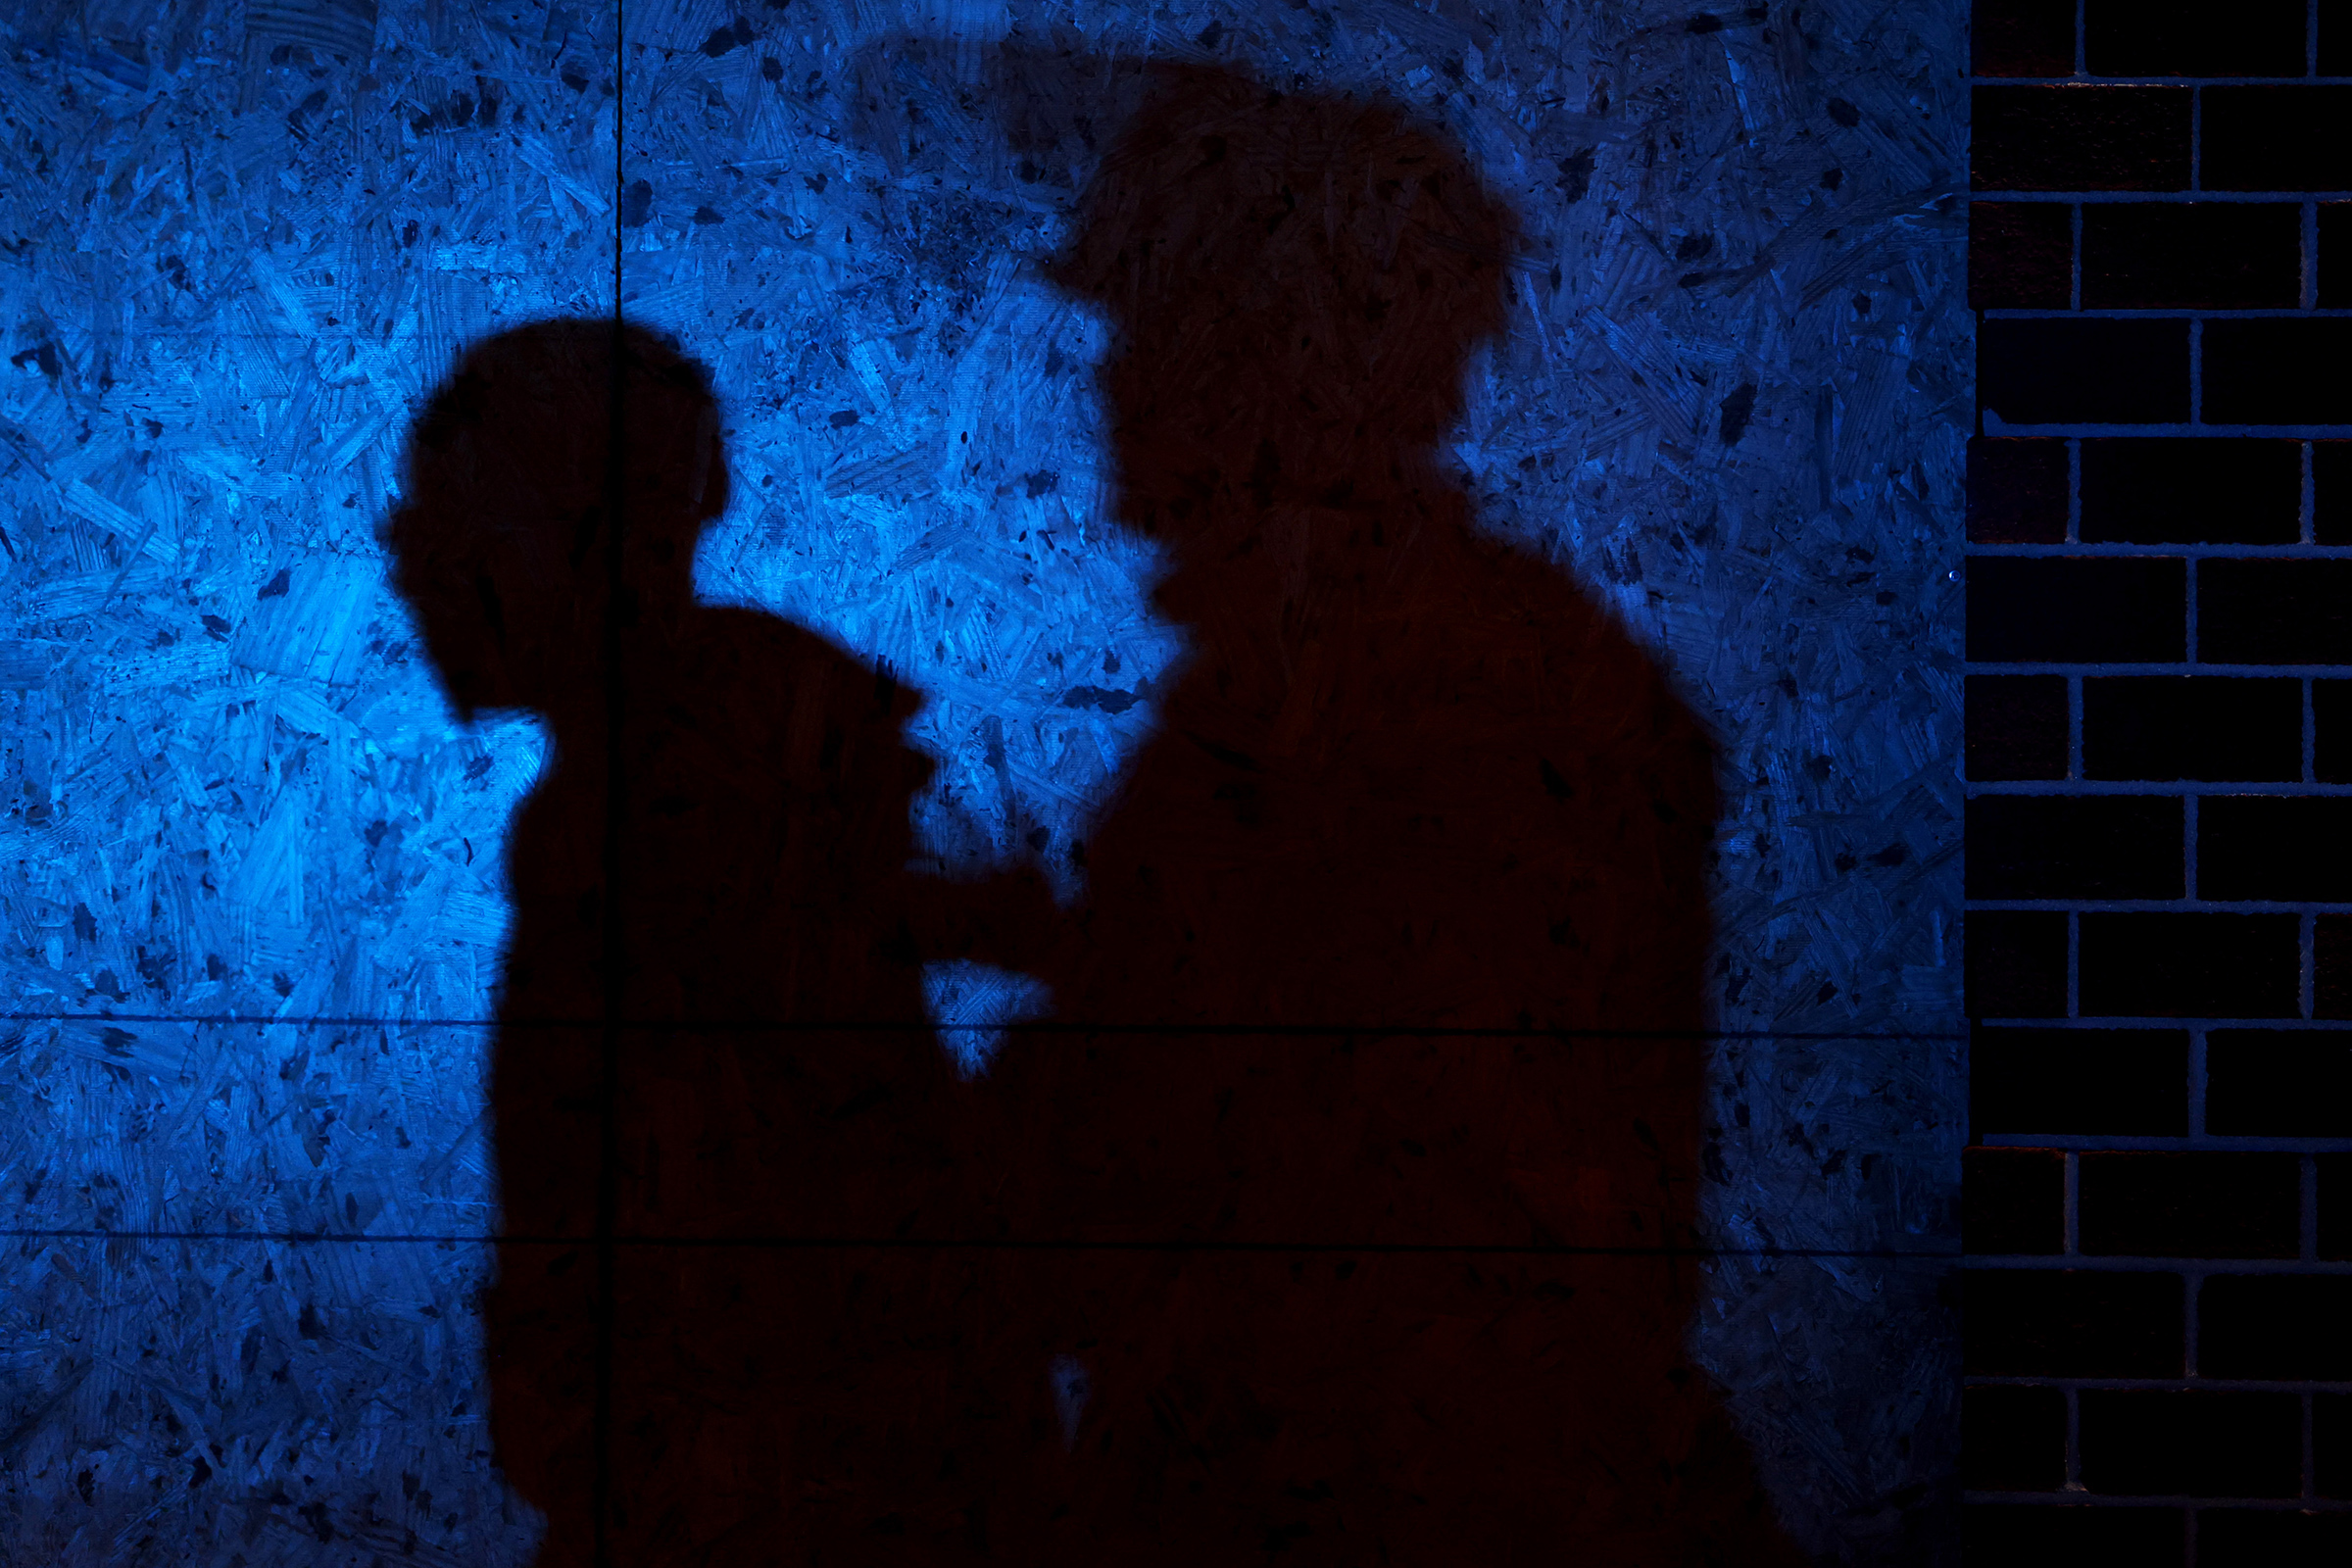 The shadow of a Louisville Police officers arresting a demonstrator is seen on a wall on September 23, 2020 in Louisville, Kentucky. A Kentucky grand jury indicted one police officer involved in the shooting of Breonna Taylor with three counts of wanton endangerment.